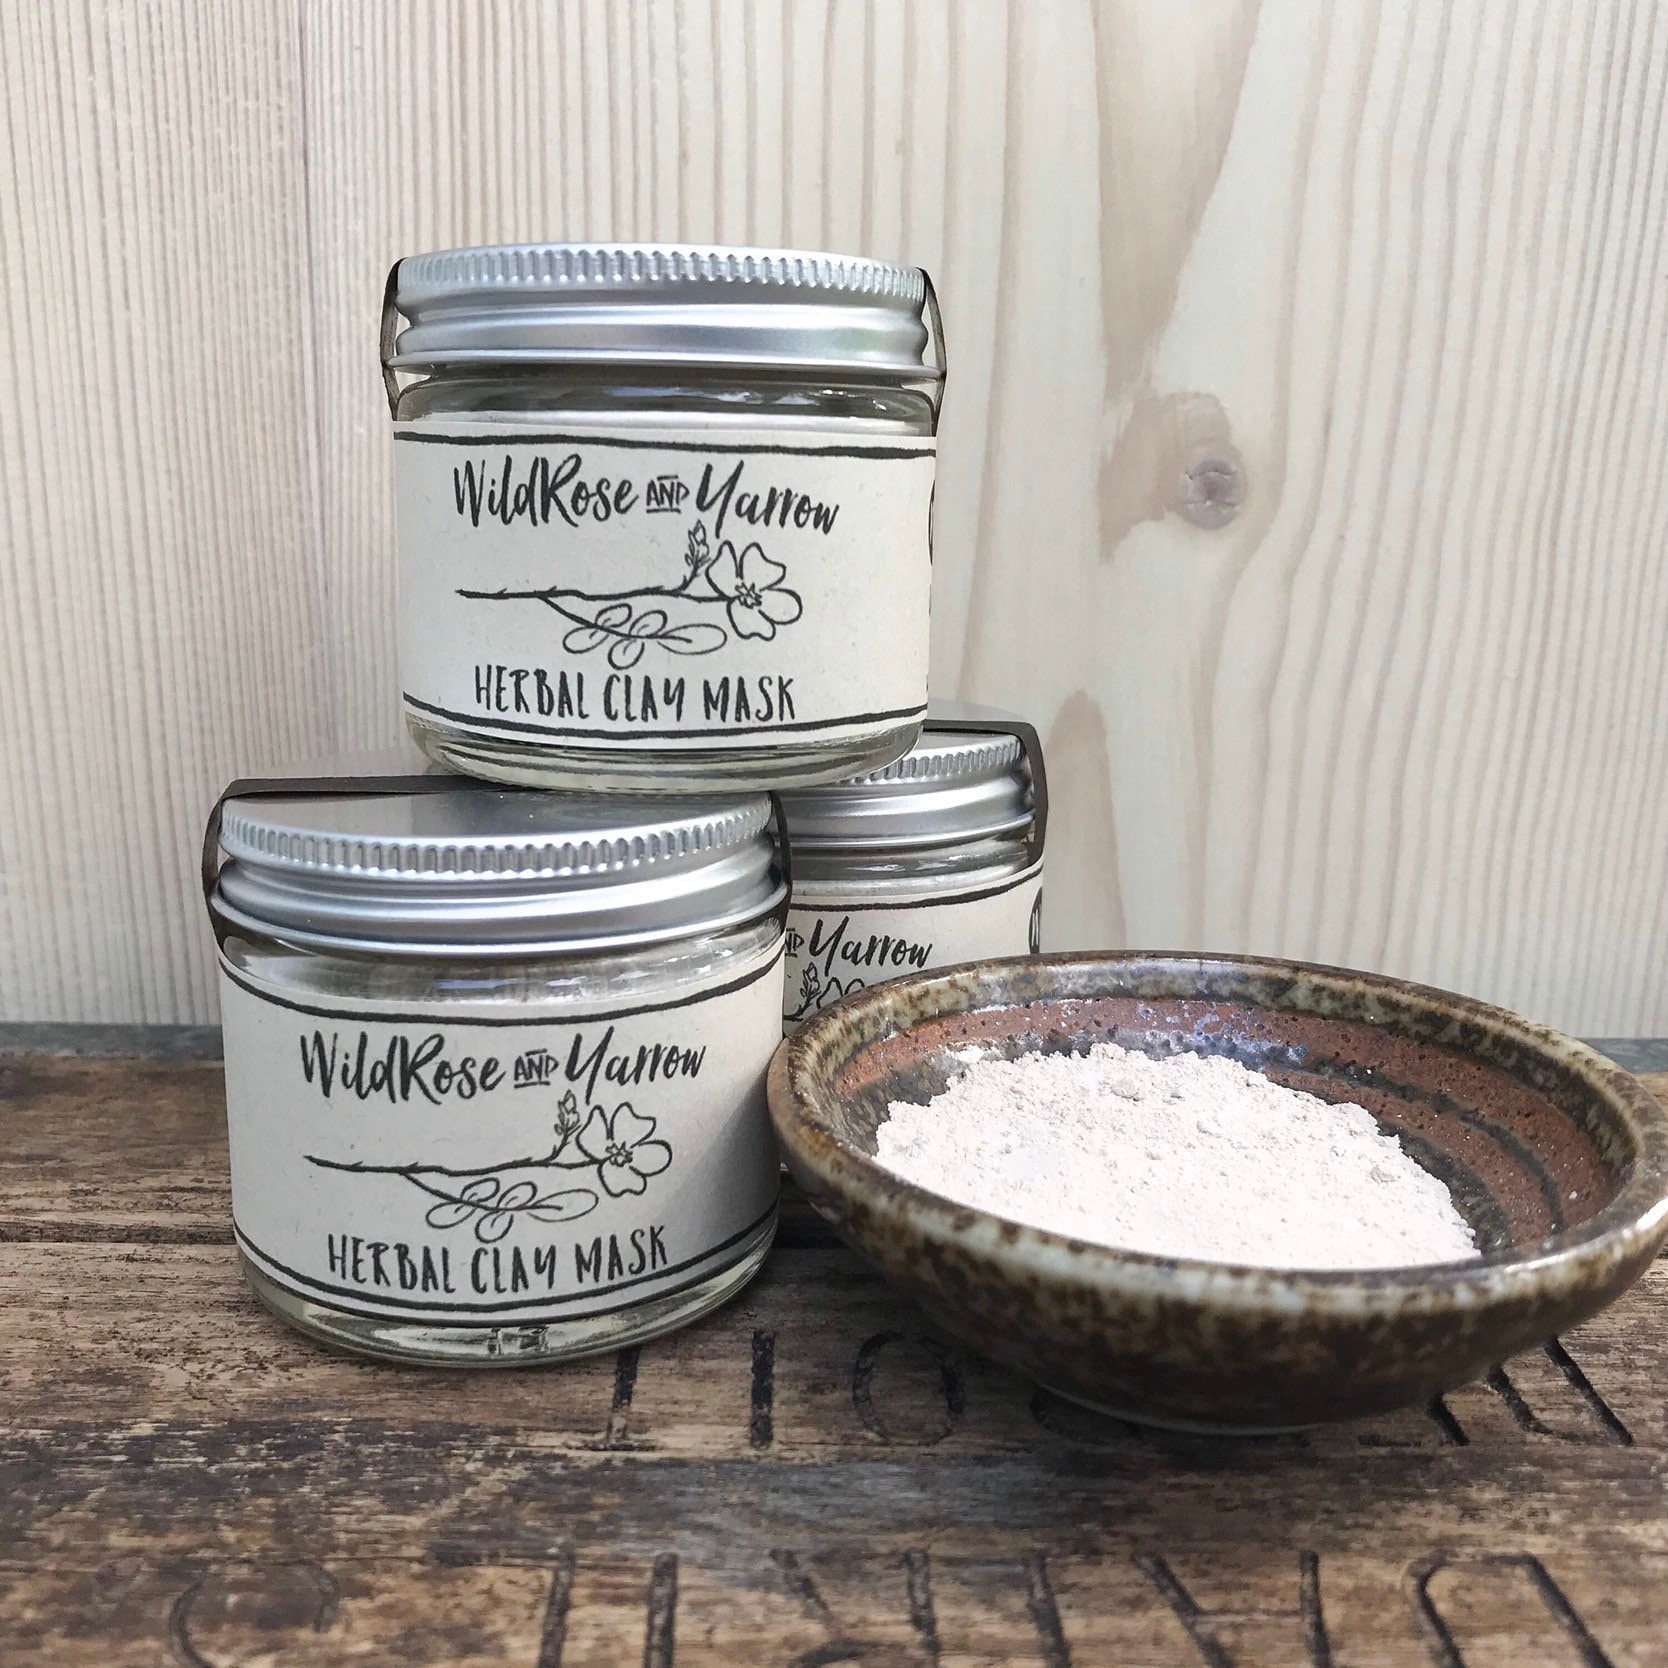 Wild Rose and Yarrow Herbal Clay Mask